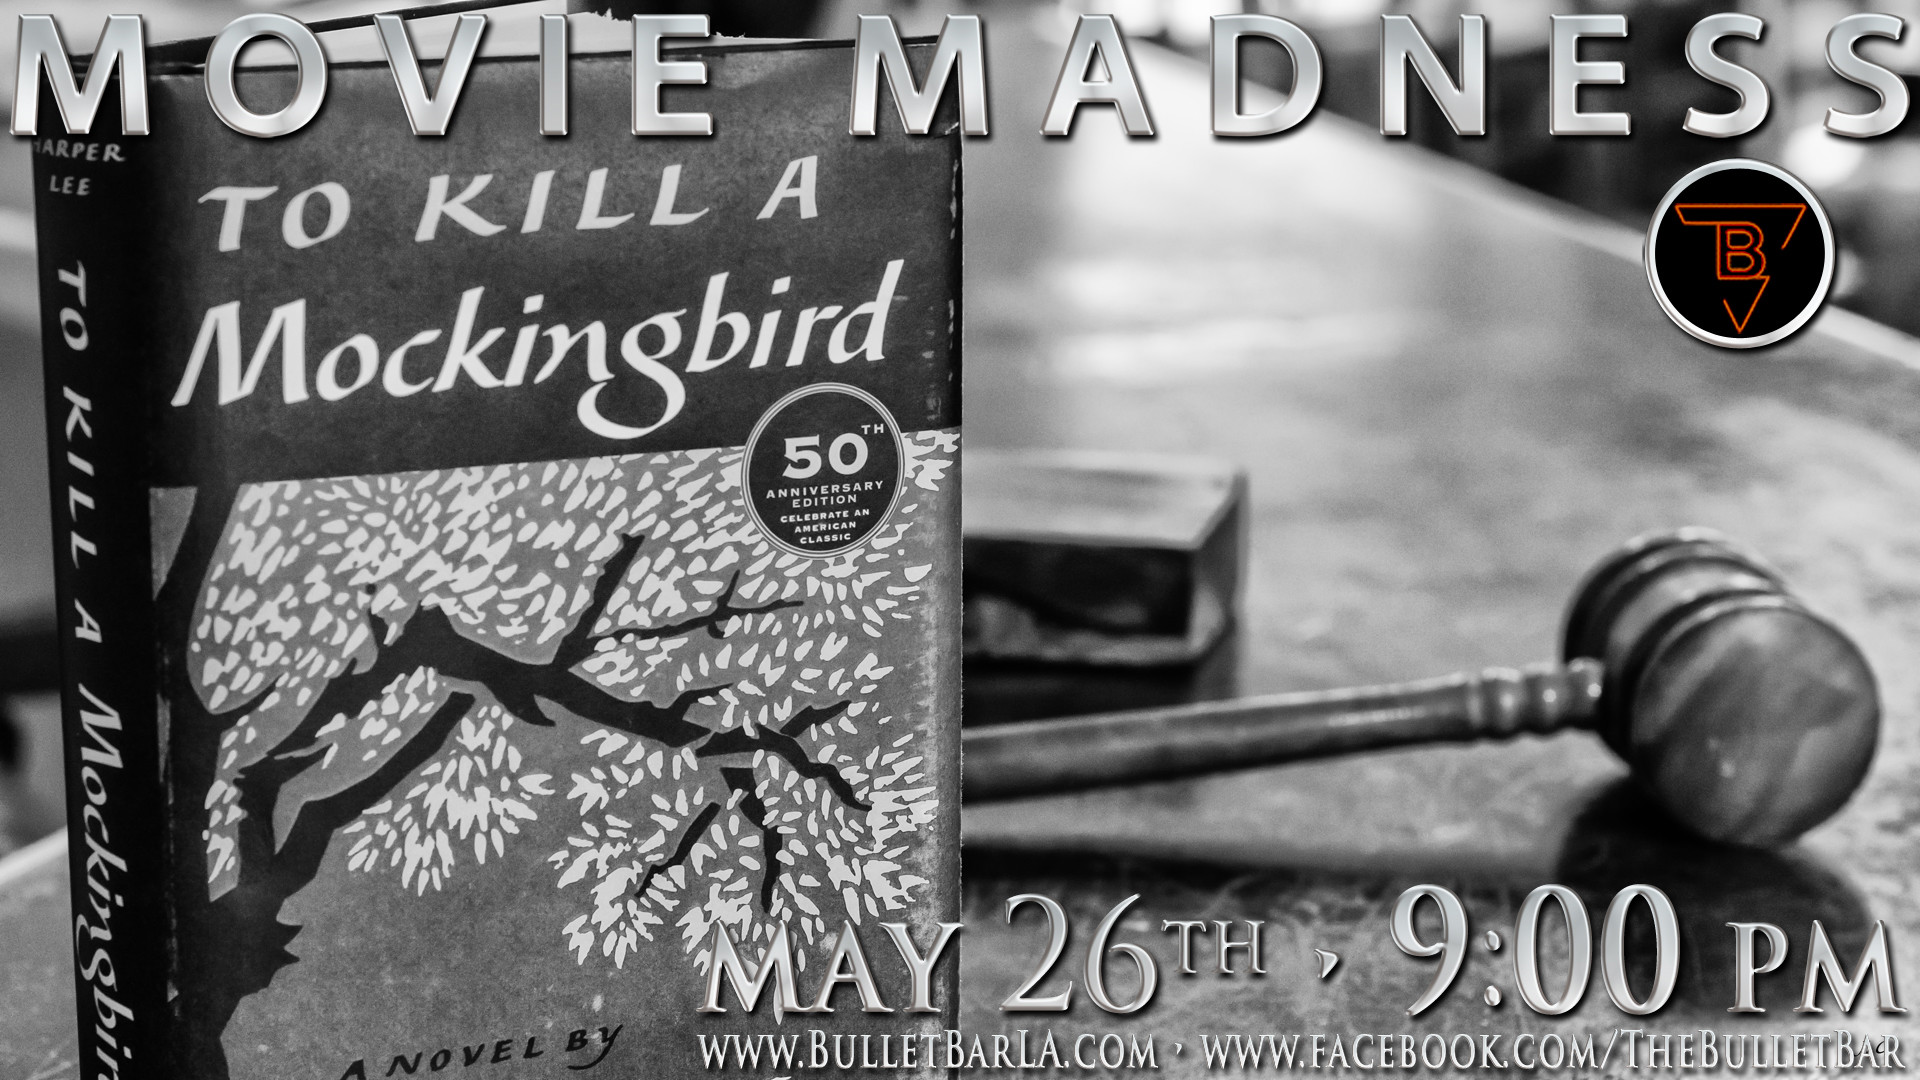 to kill a mockingbird was justice Justice is an important theme in to kill a mockingbird, in which scout confronts difficult truths about bias and racism within her community she learns that while the courts can be a potential source of justice, there are also other ways of achieving justice outside the courtroom.